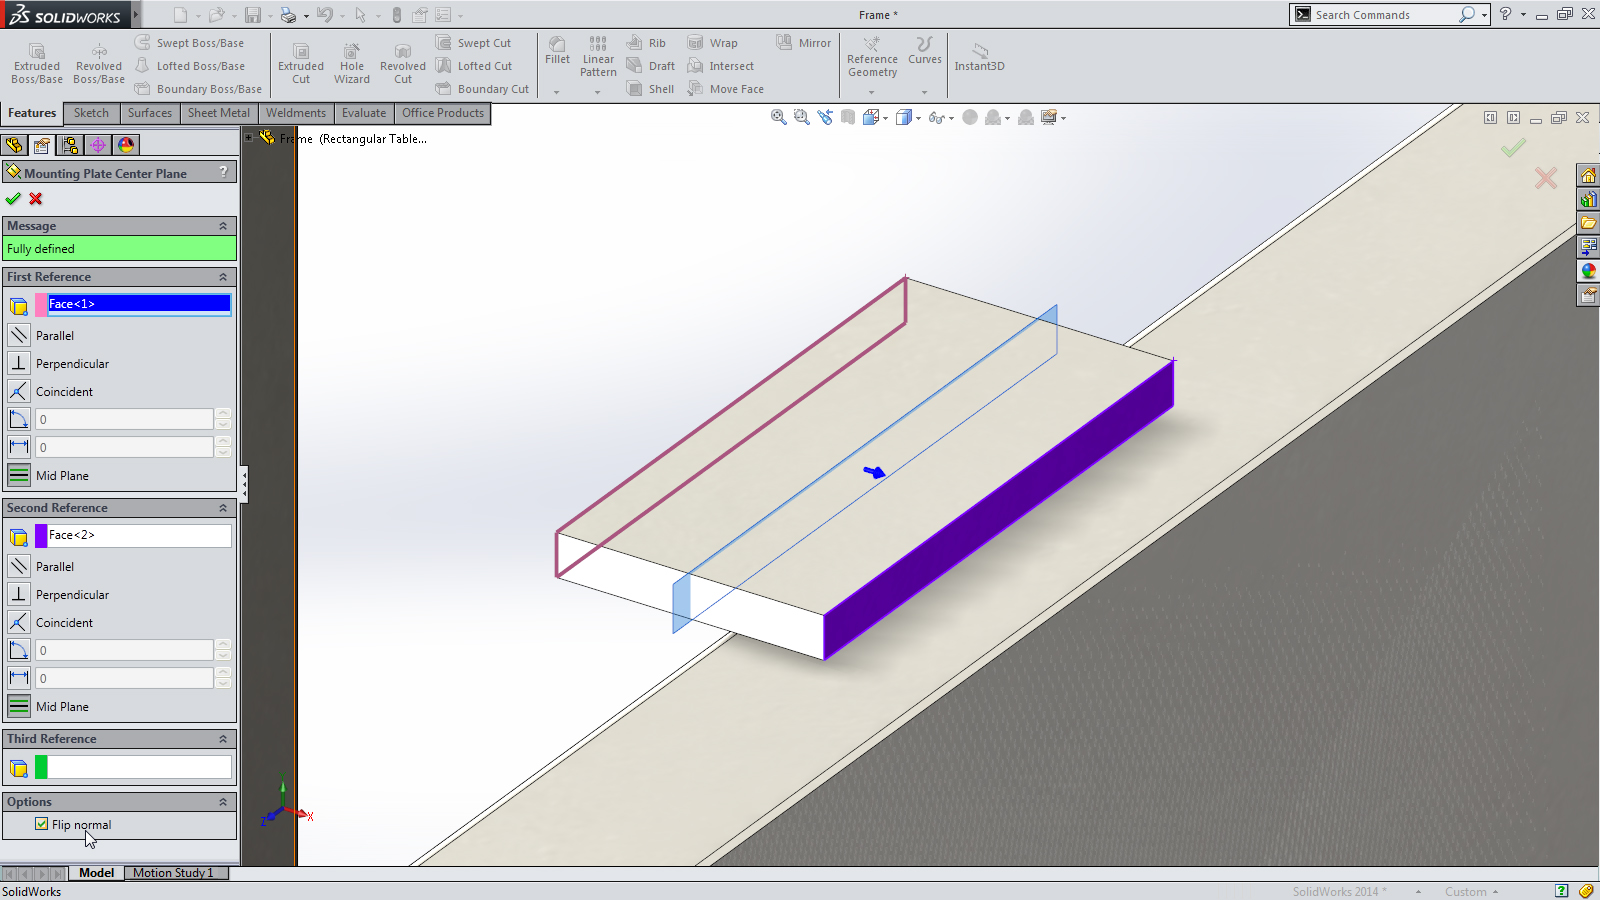 SolidWorks 2014 Sneak Peek: Reference Plane Normal Condition